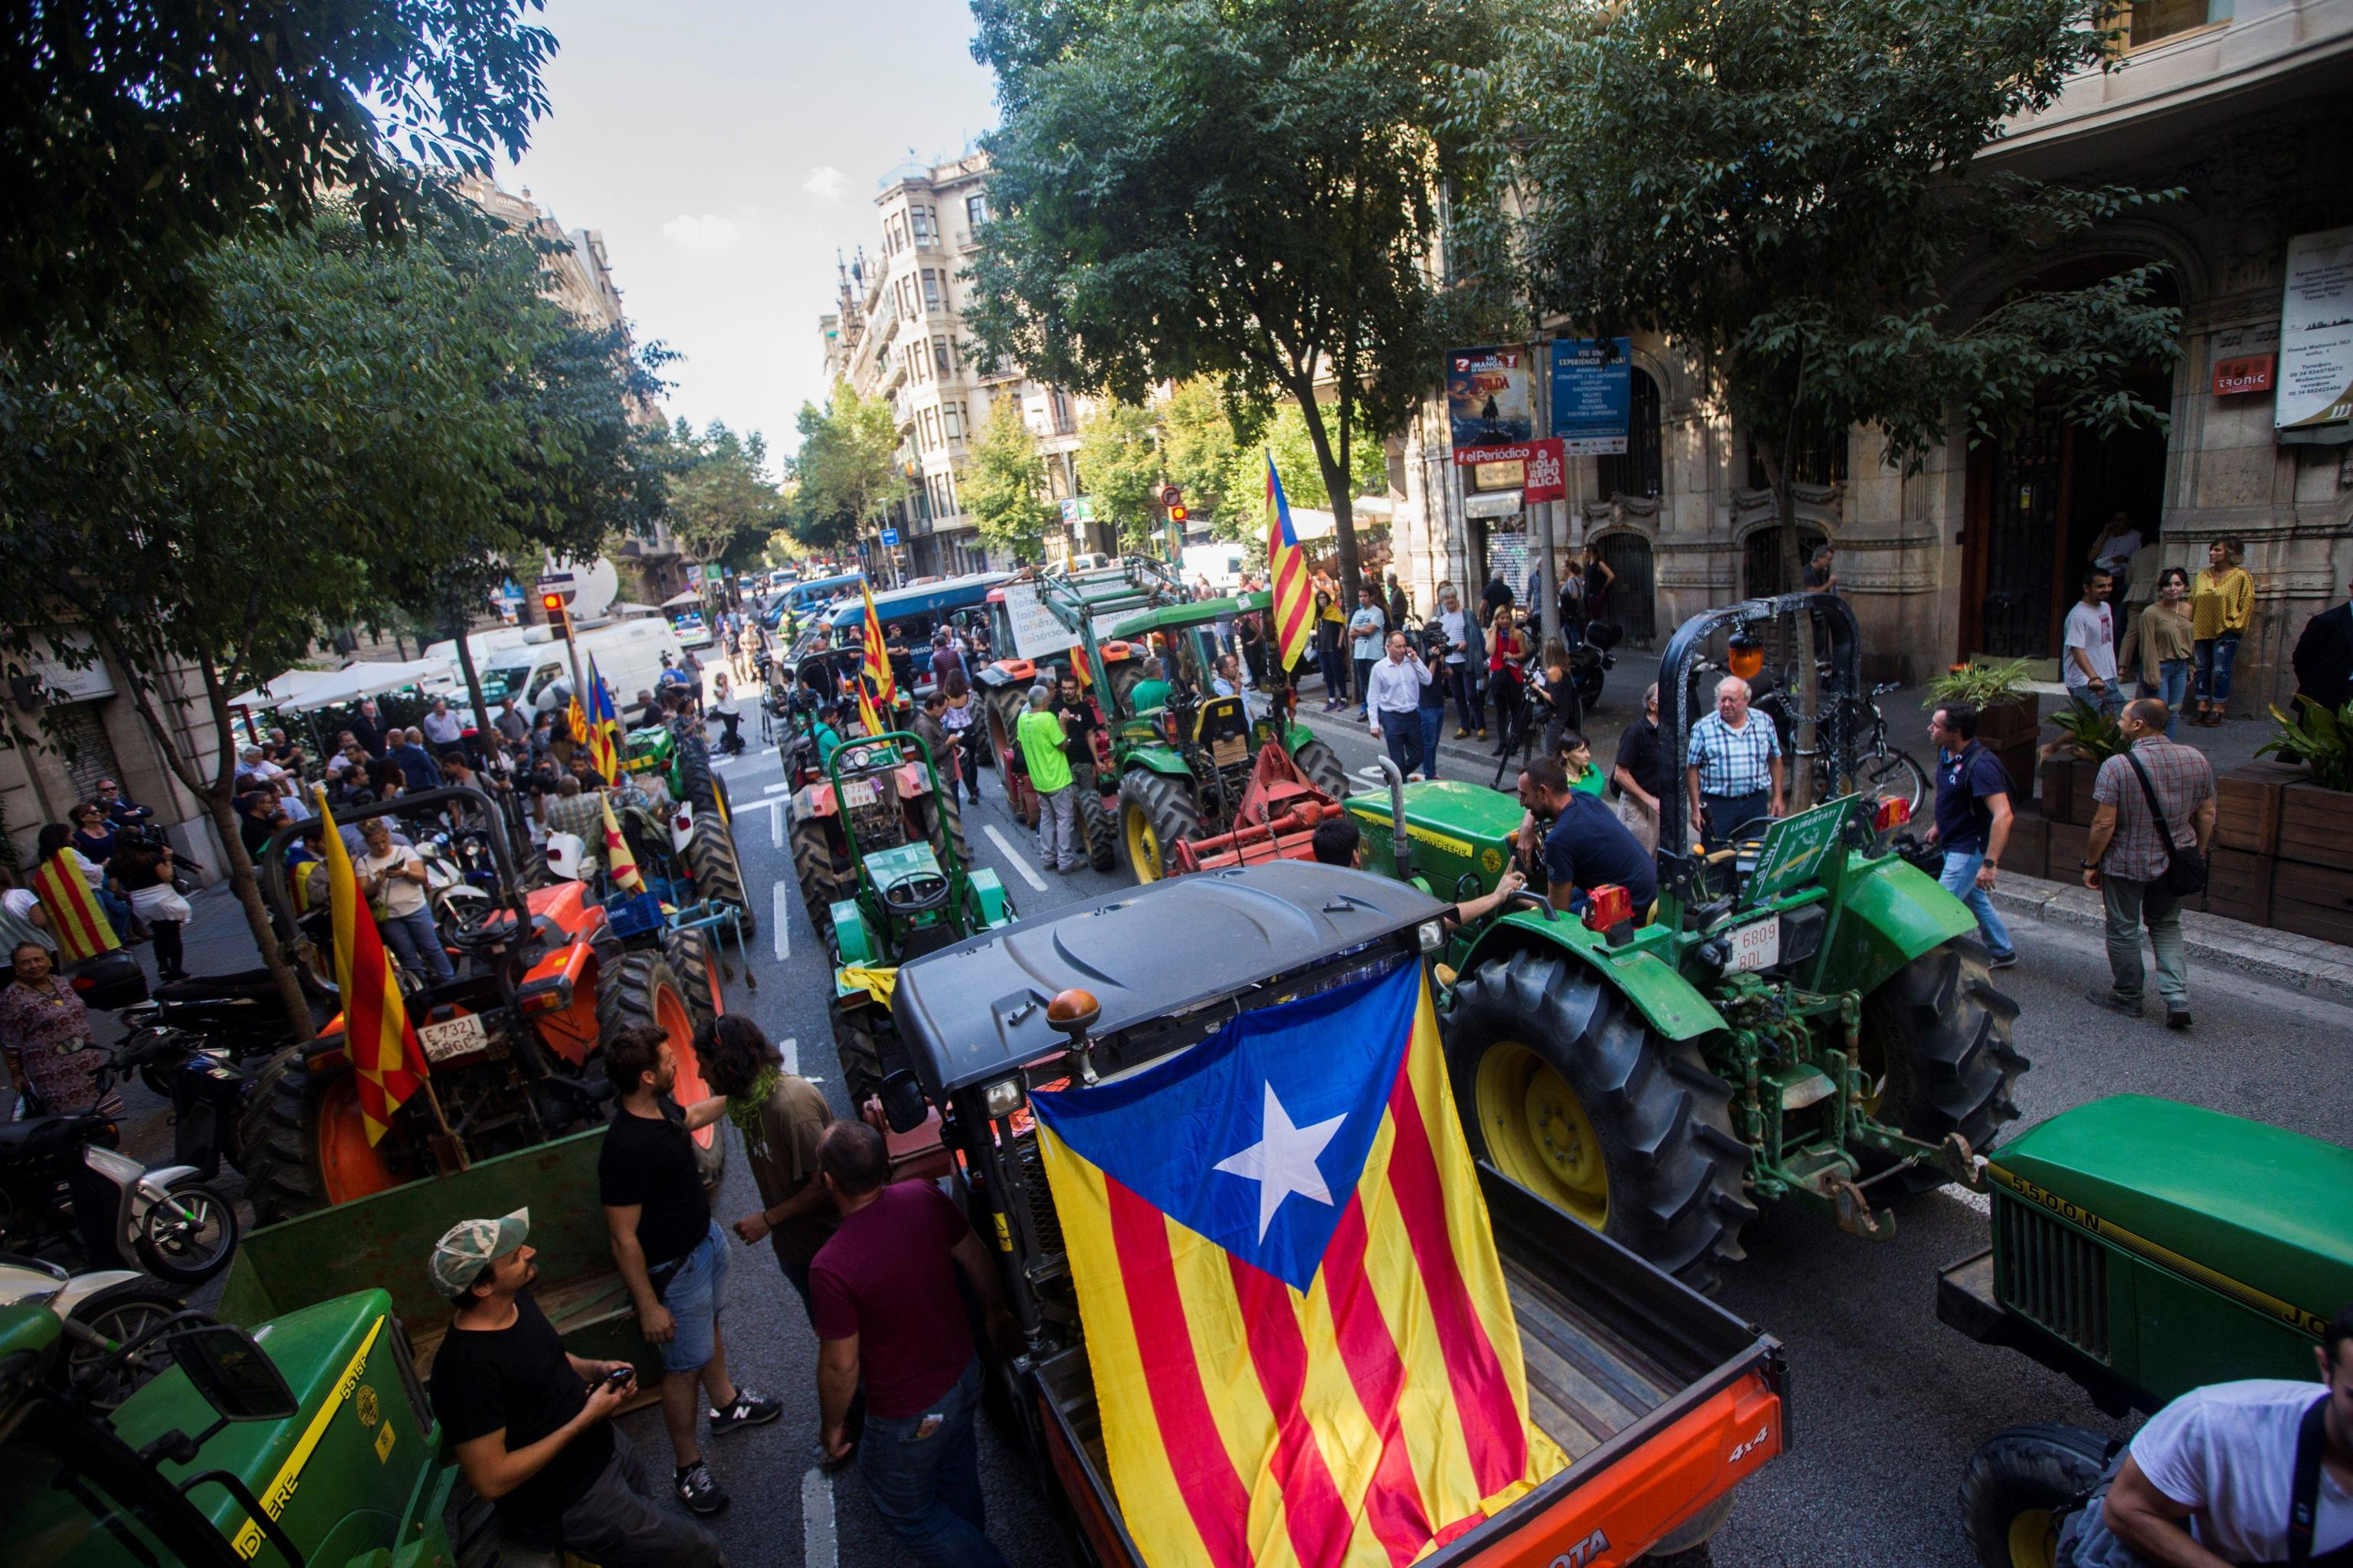 Protest in support of the Catalan referendum